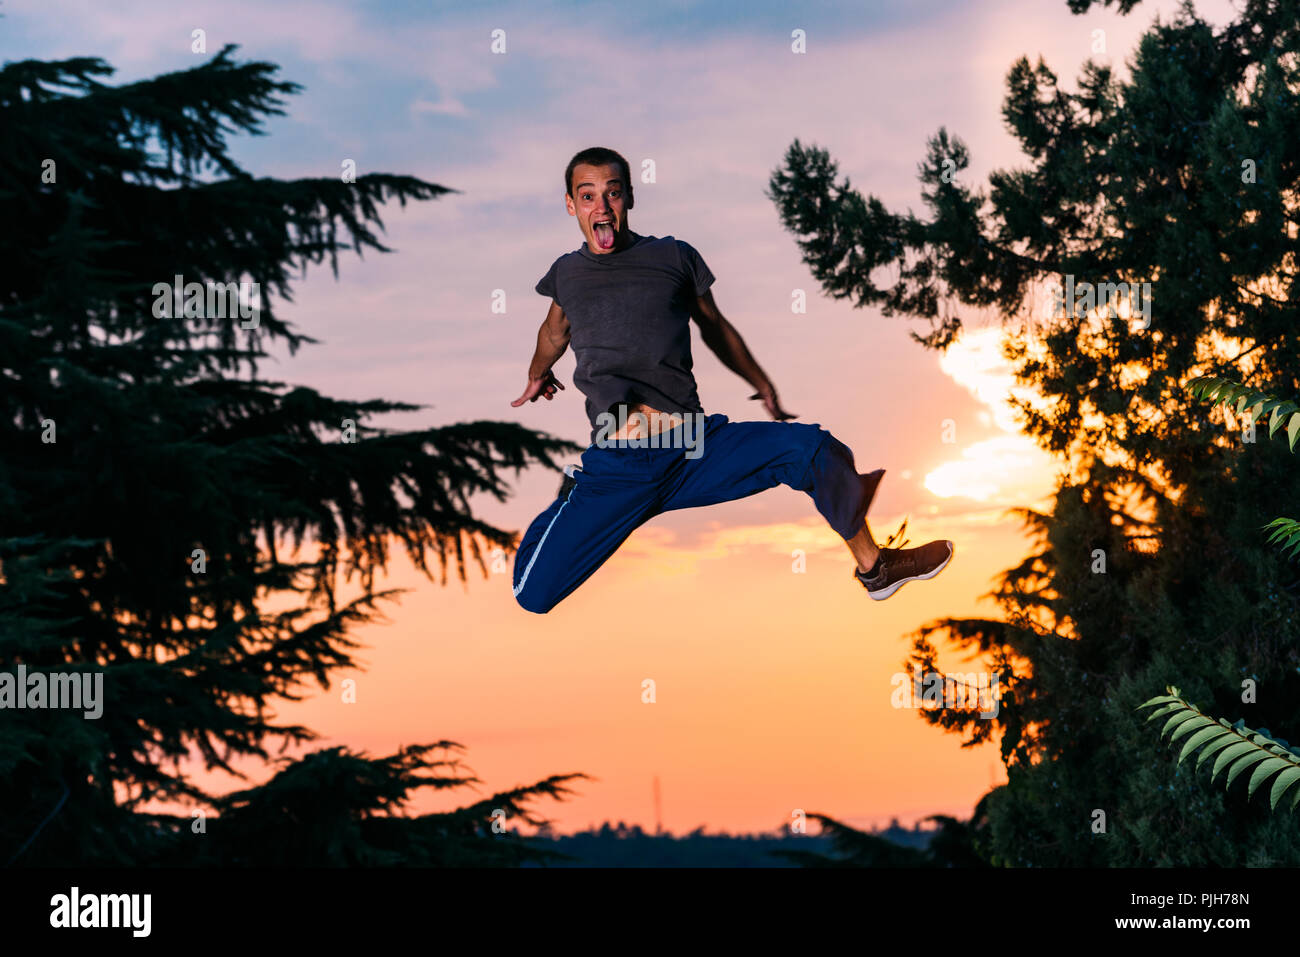 Free runner man exercise parkour outdoor while jumping - Stock Image